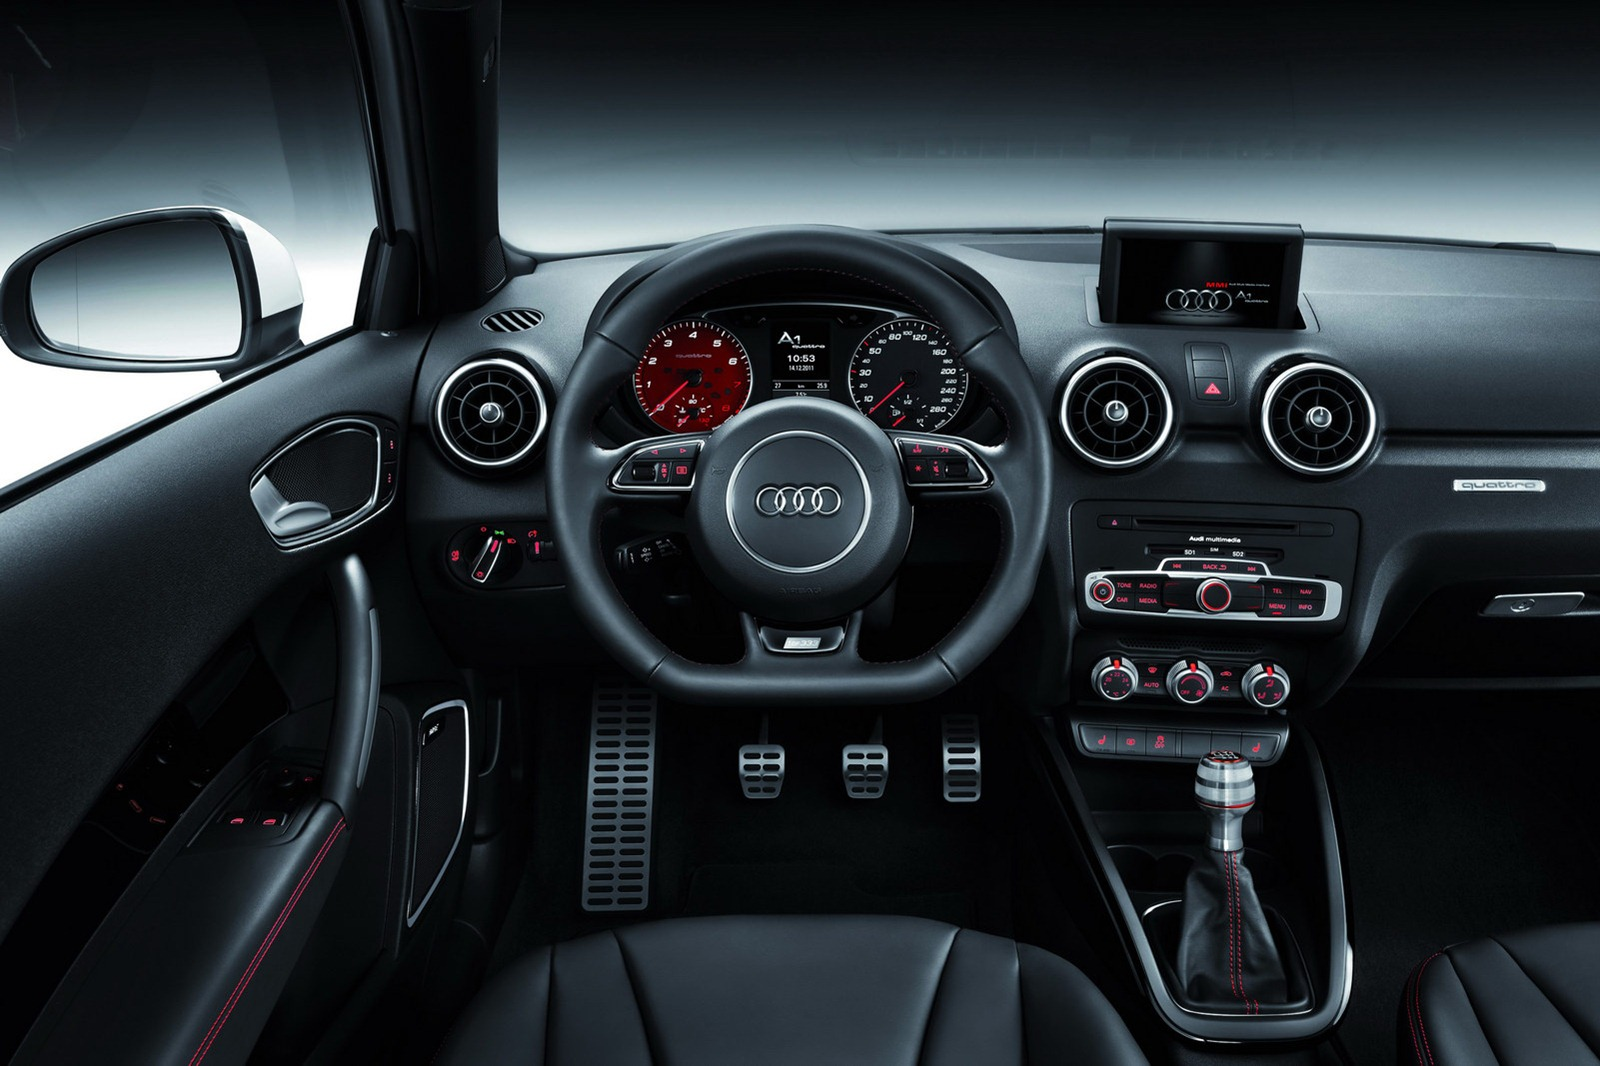 astounding-design-of-the-black-seats-ideas-with-black-dash-and-steering-wheels-as-the-audi-q1-2015-interior